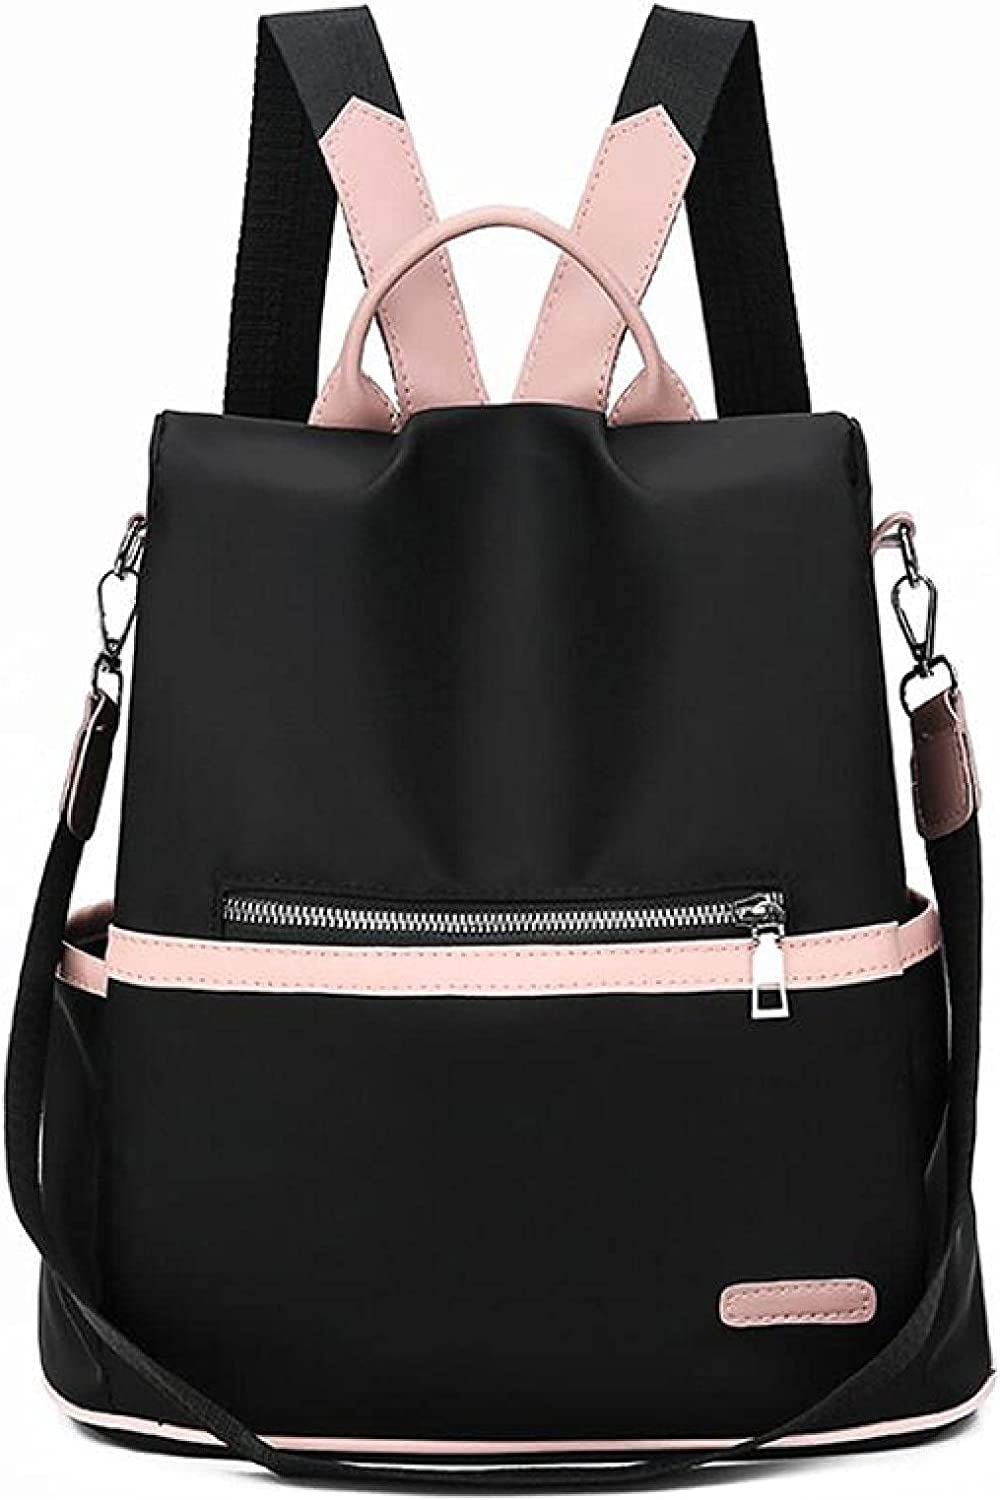 Black Backpacks for Women,Casual Waterpro Backpack High quality new Women Max 75% OFF